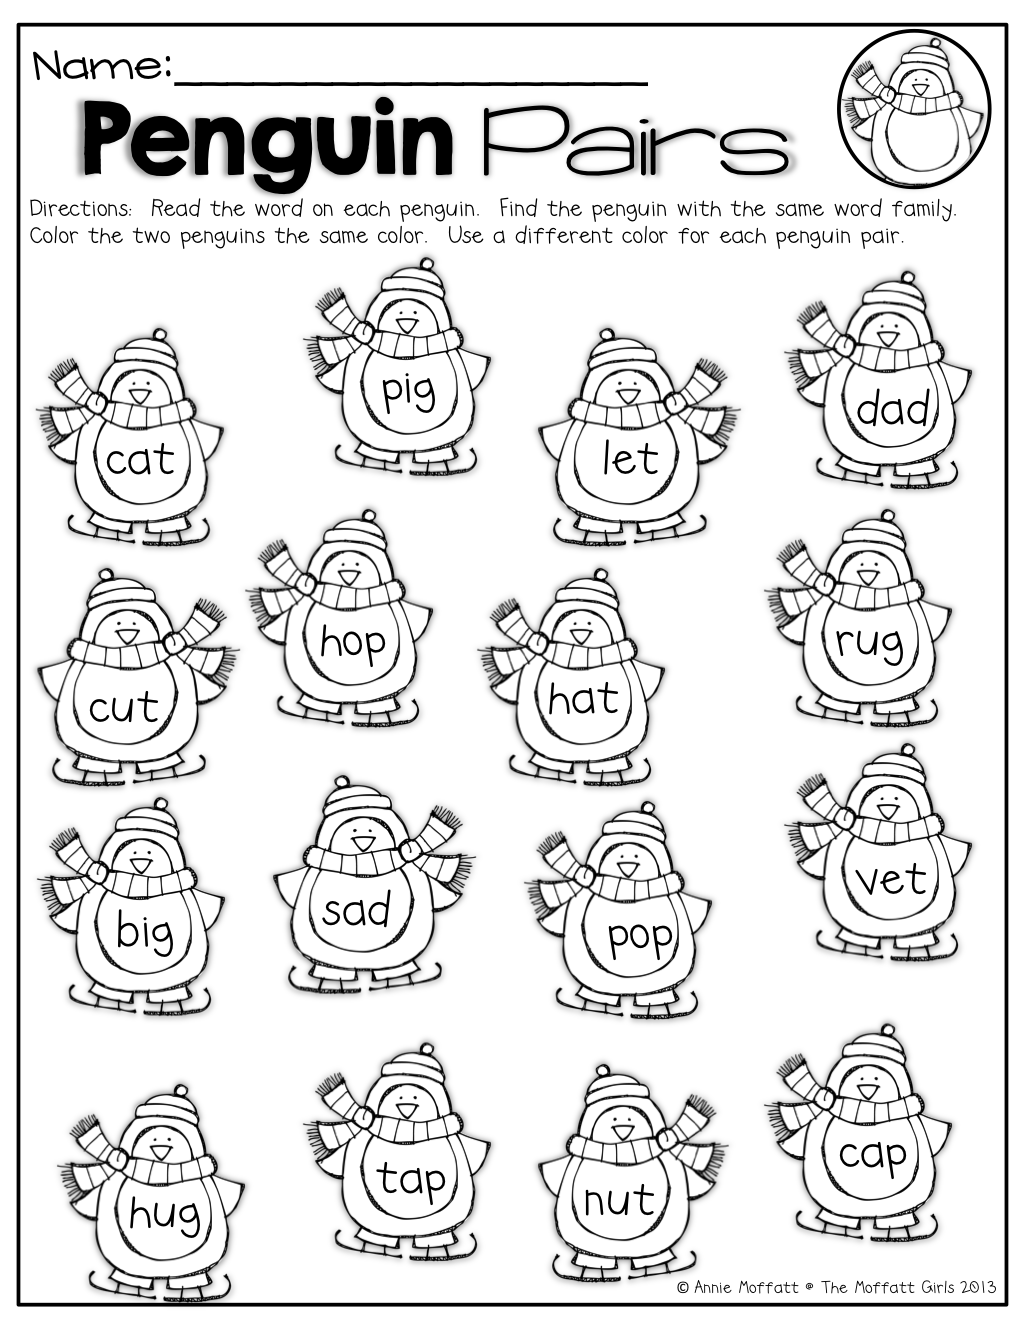 Penguin Pairs Color The Pair Of Penguins That Have The Same Word Family What A Fun Way To Practice Read Word Families Kindergarten Rhyming Words Worksheets [ 1325 x 1024 Pixel ]